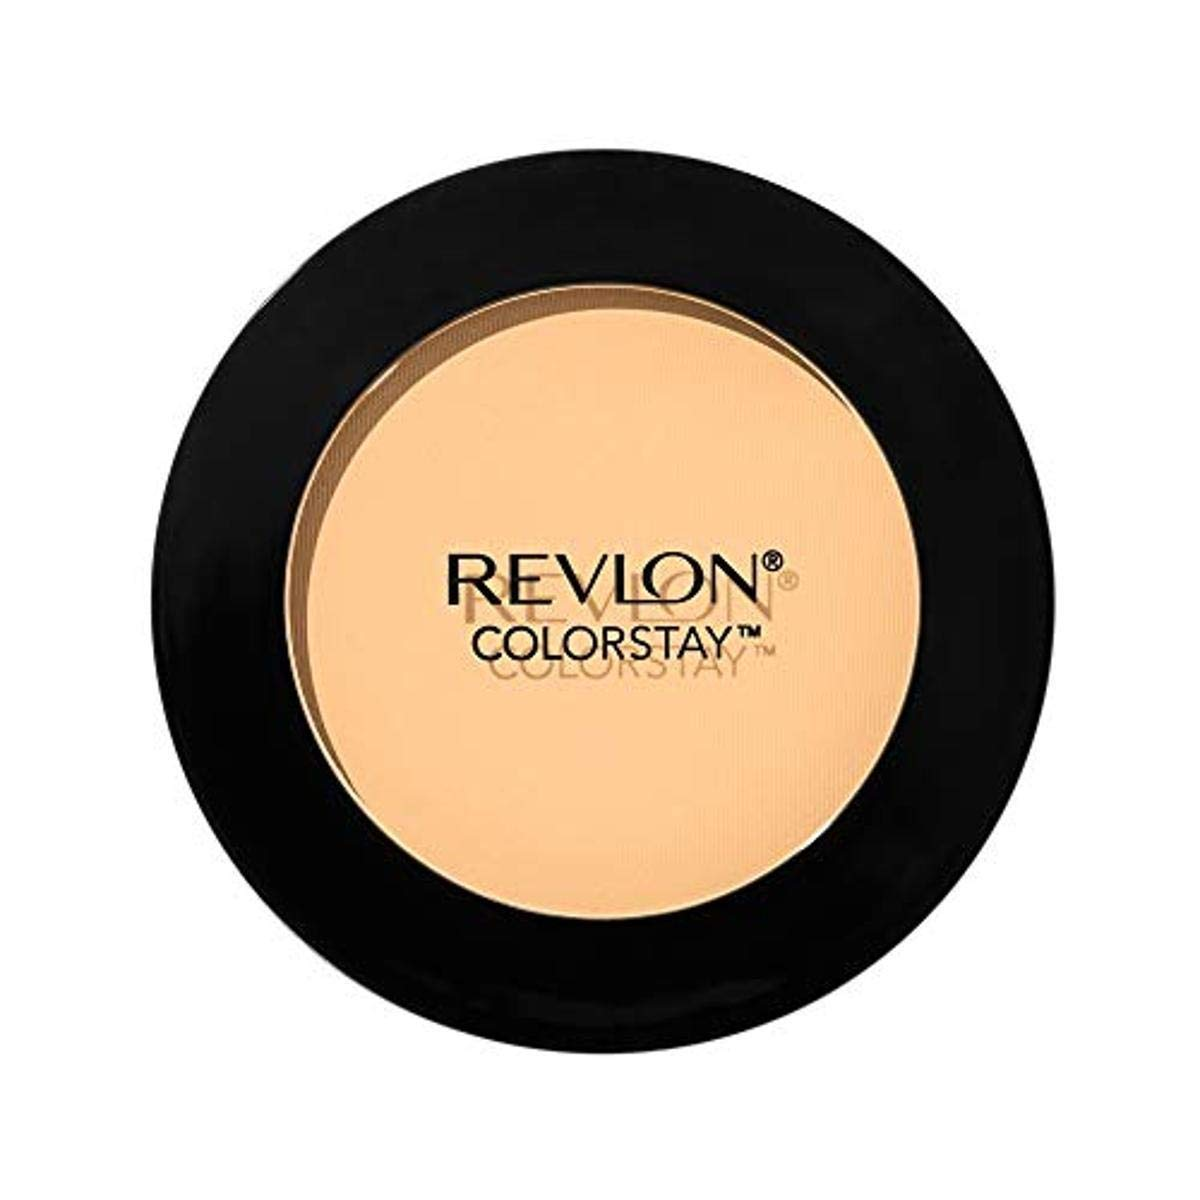 Revlon ColorStay Pressed Powder, Longwearing Oil Free, Fragrance Free, Noncomedogenic Face Makeup, Natural Ochre (290)